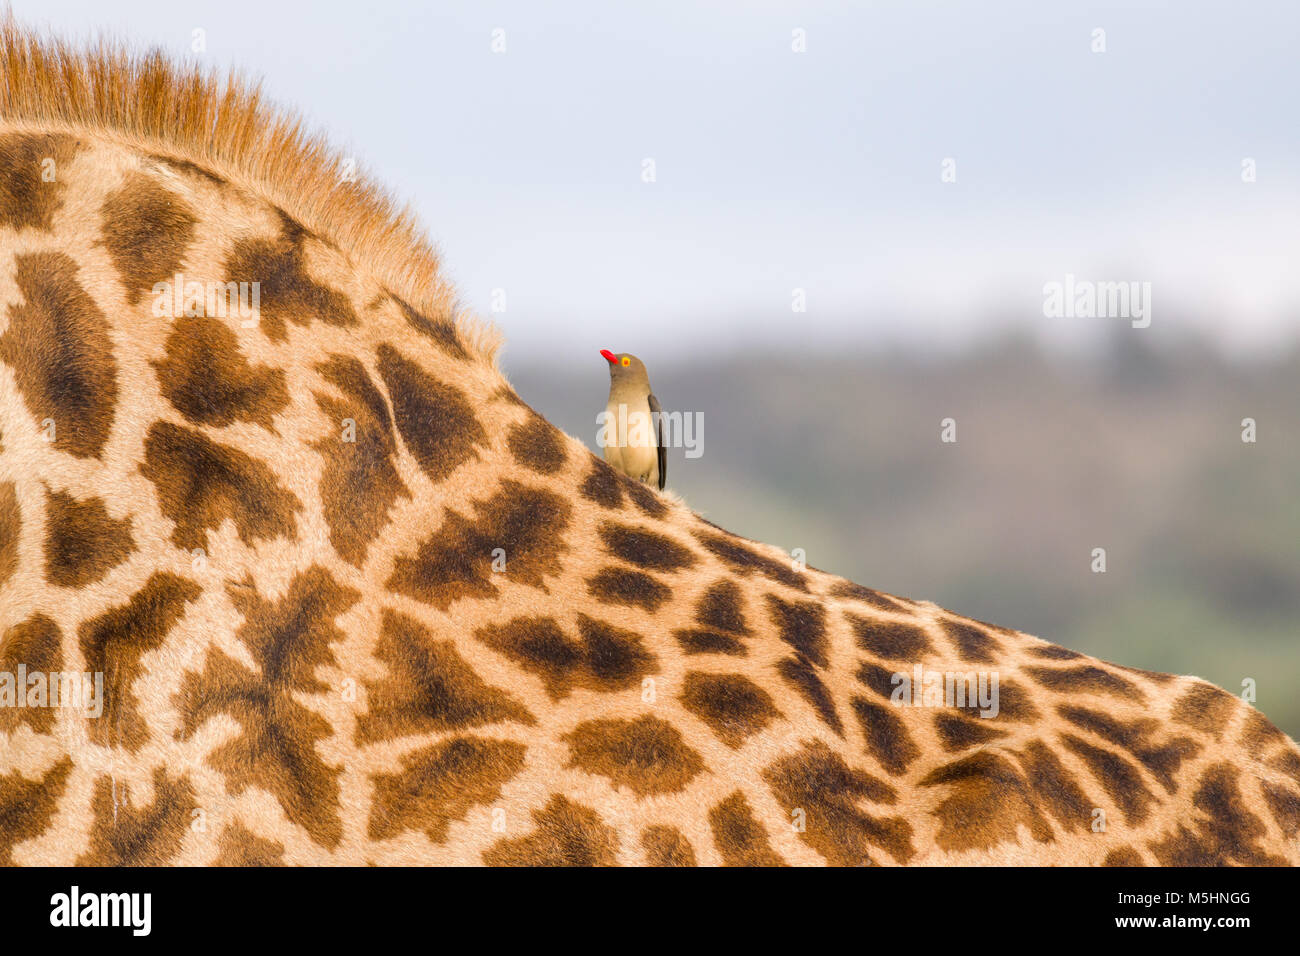 A single Red-billed oxpecker (Buphagus erythrorhynchus) perched on the back of a Masai giraffe (Giraffa tippelskirchi), - Stock Image